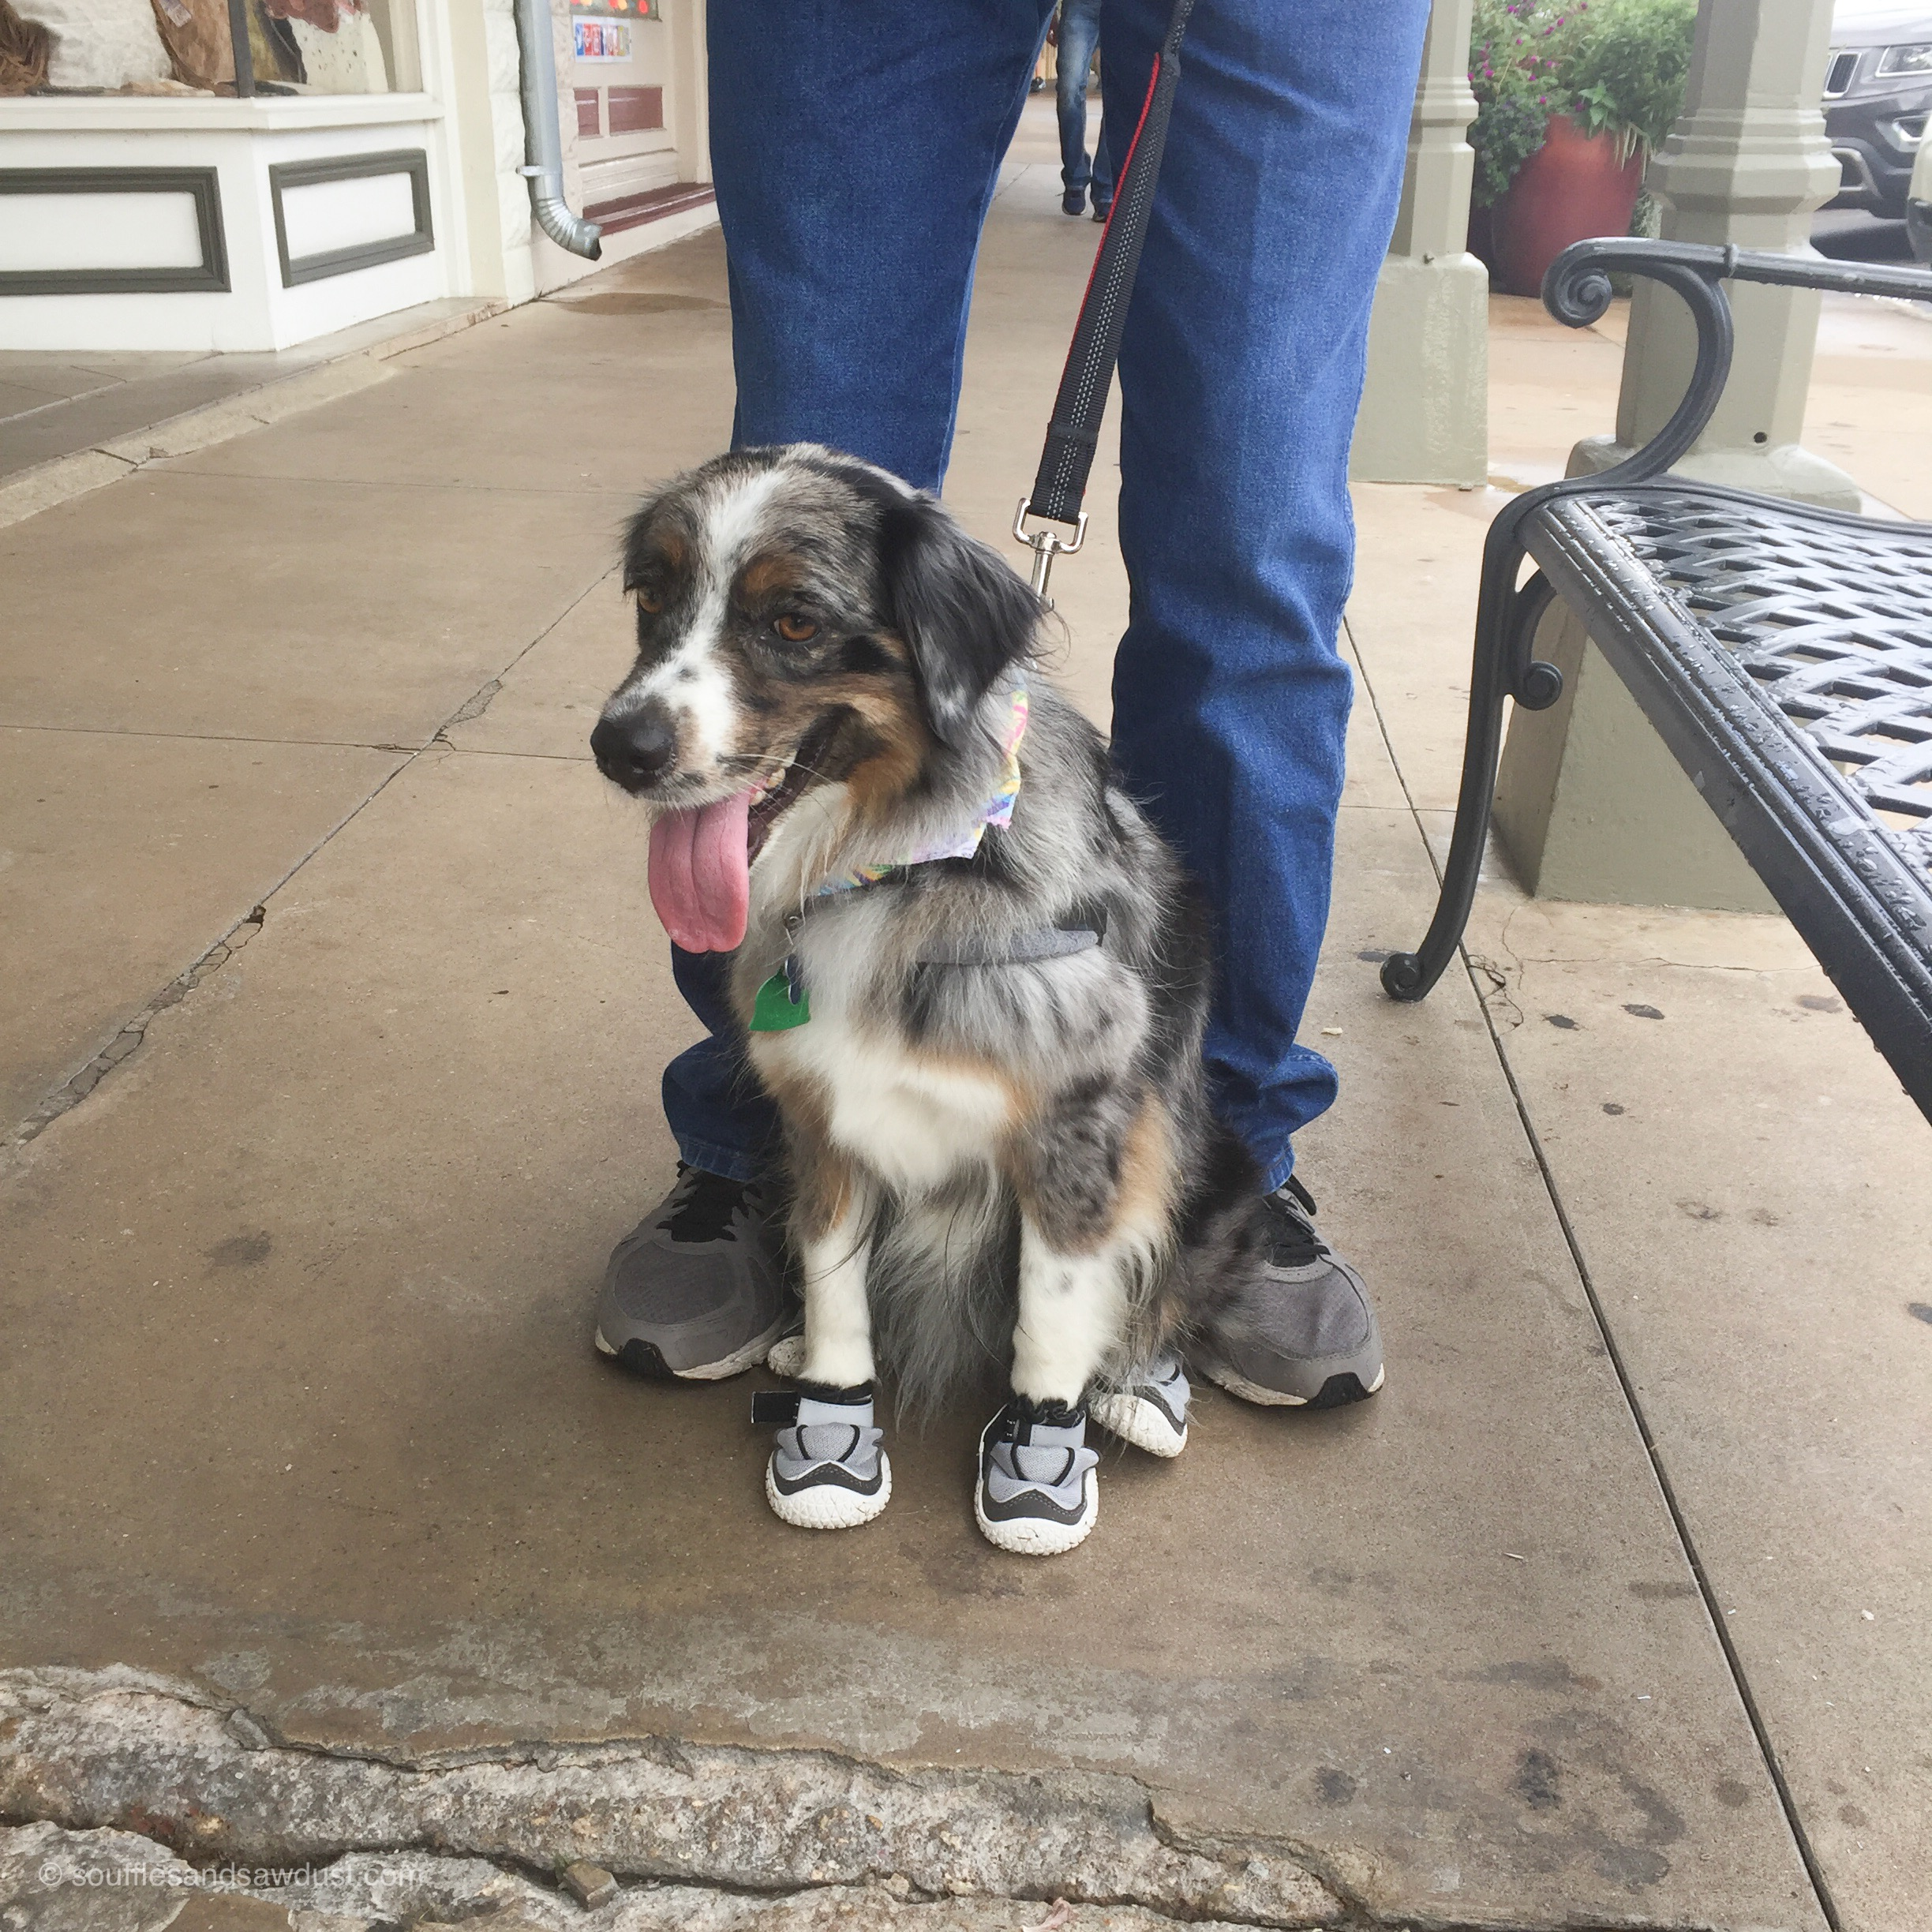 Dog with sneakers in Fredericksburg, Texas, from the blog, SoufflesandSawdust.com